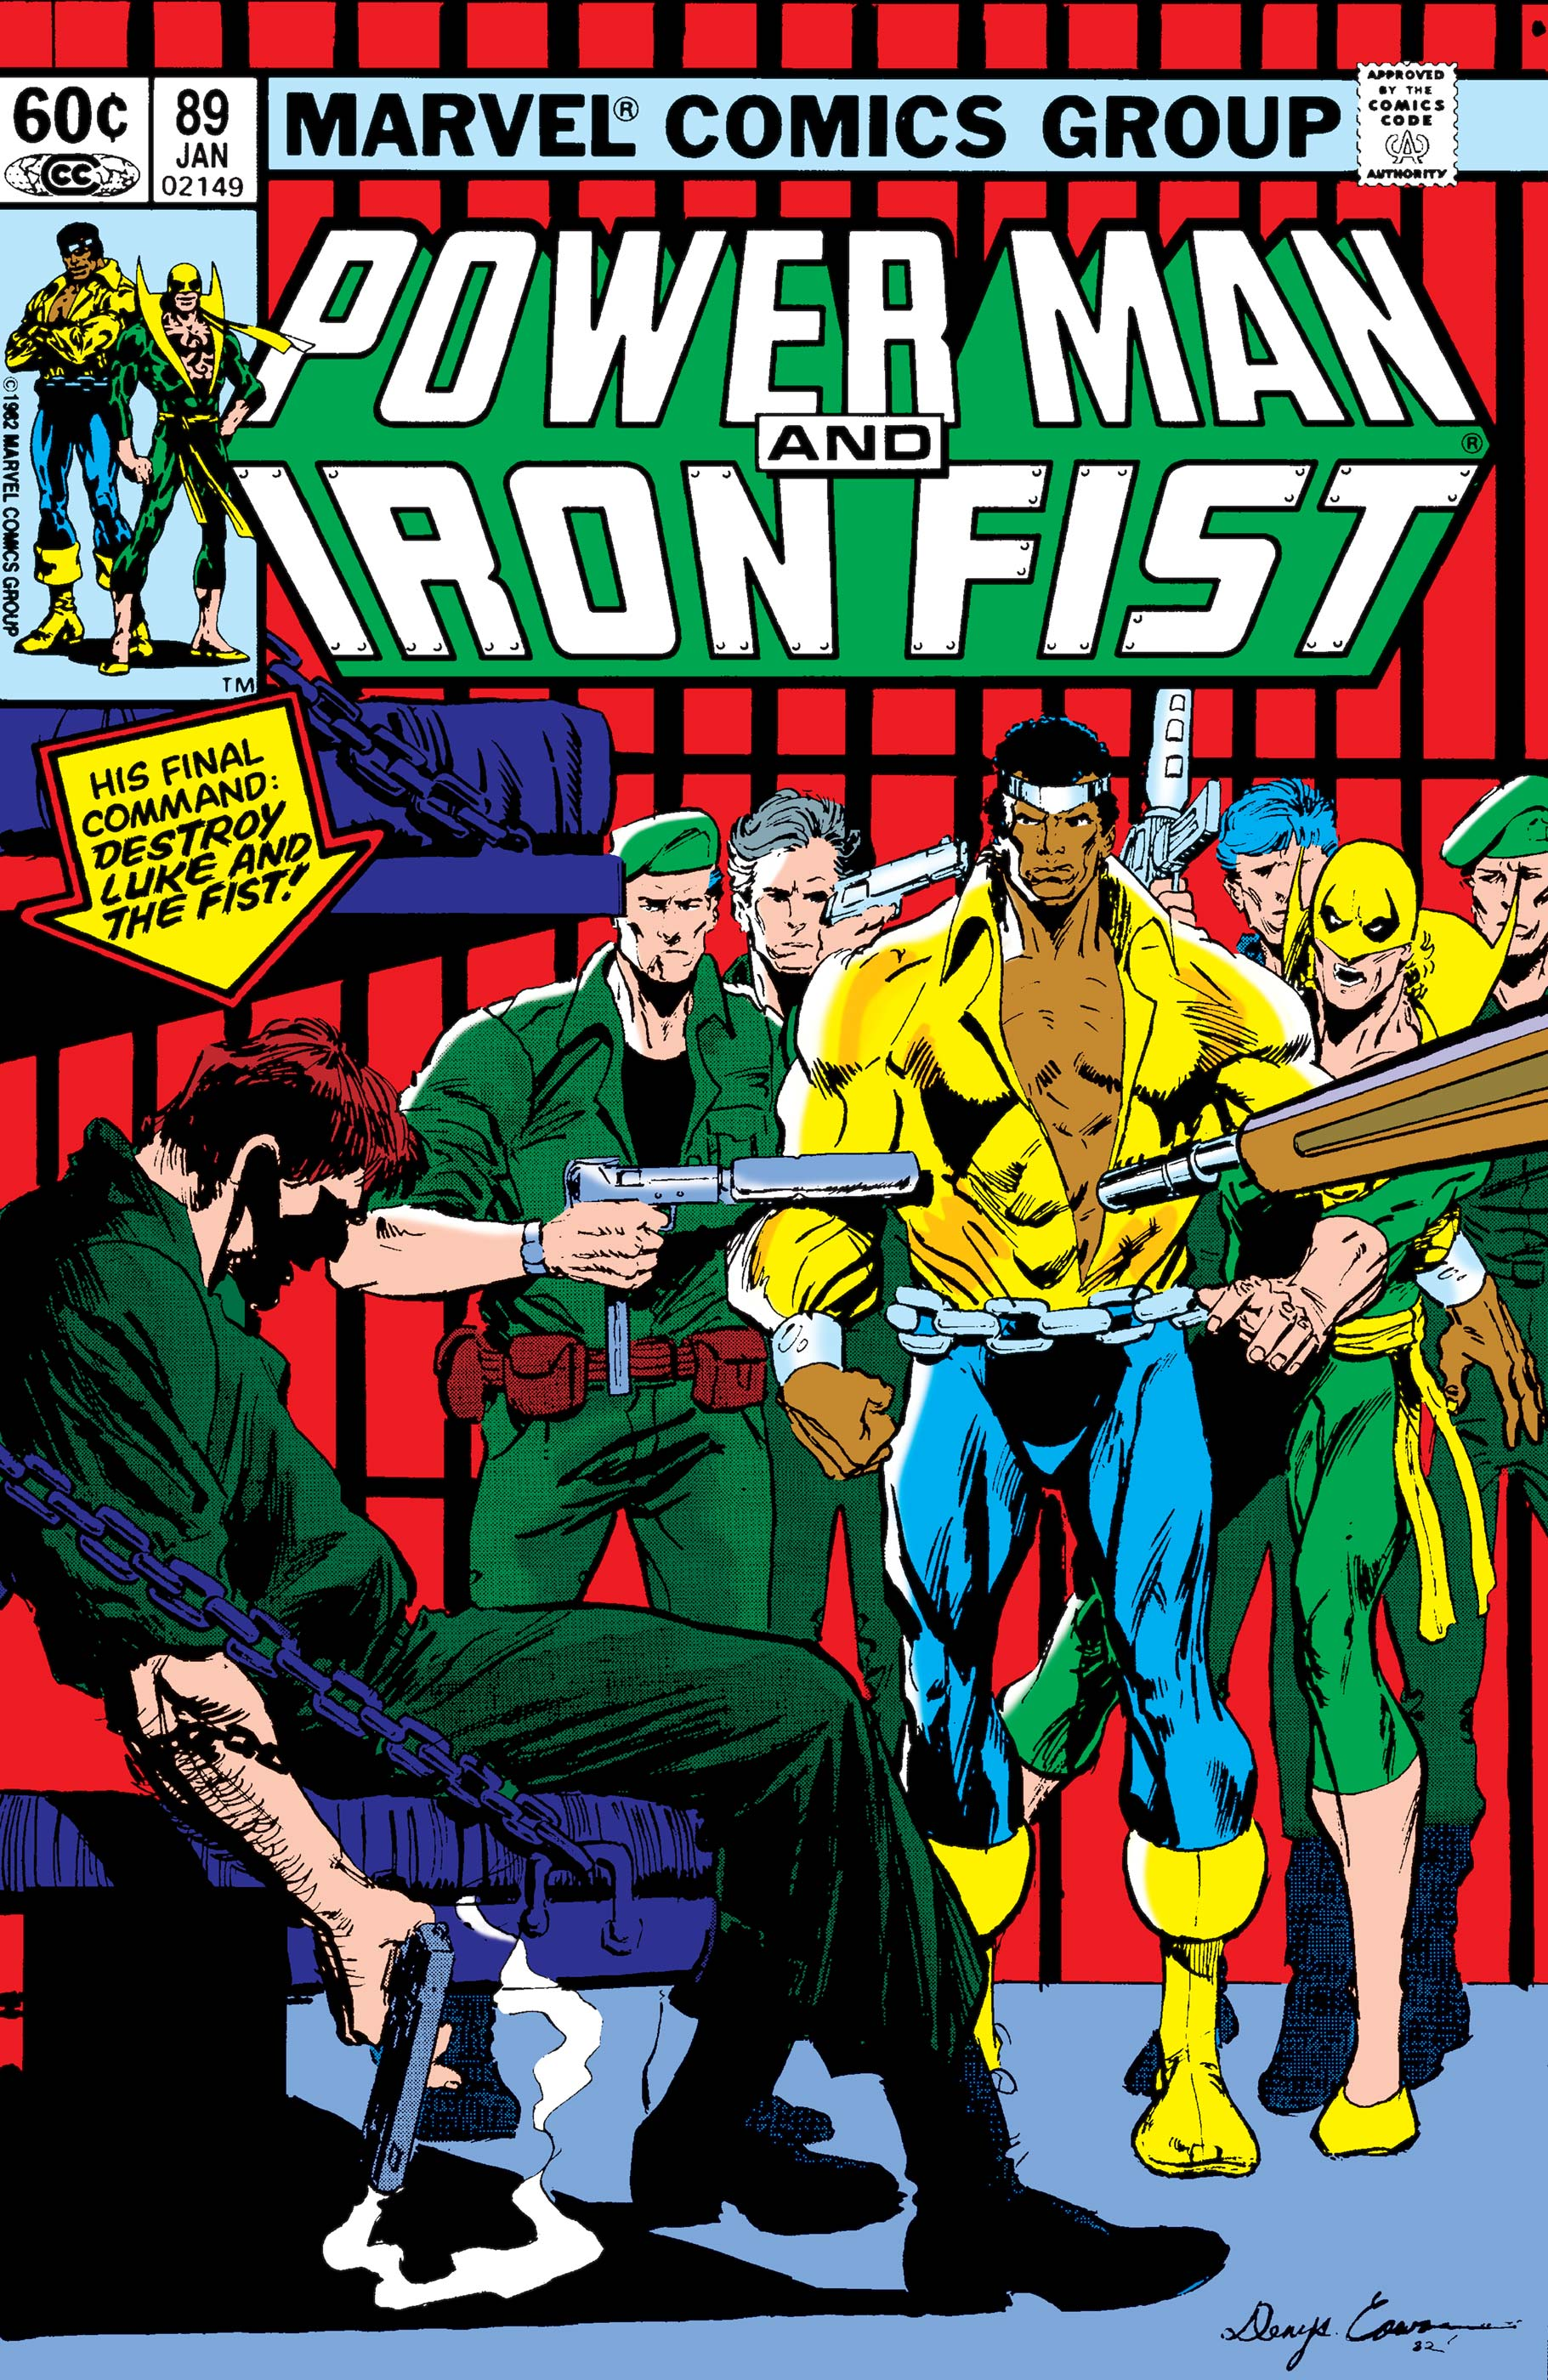 Power Man and Iron Fist (1978) #89